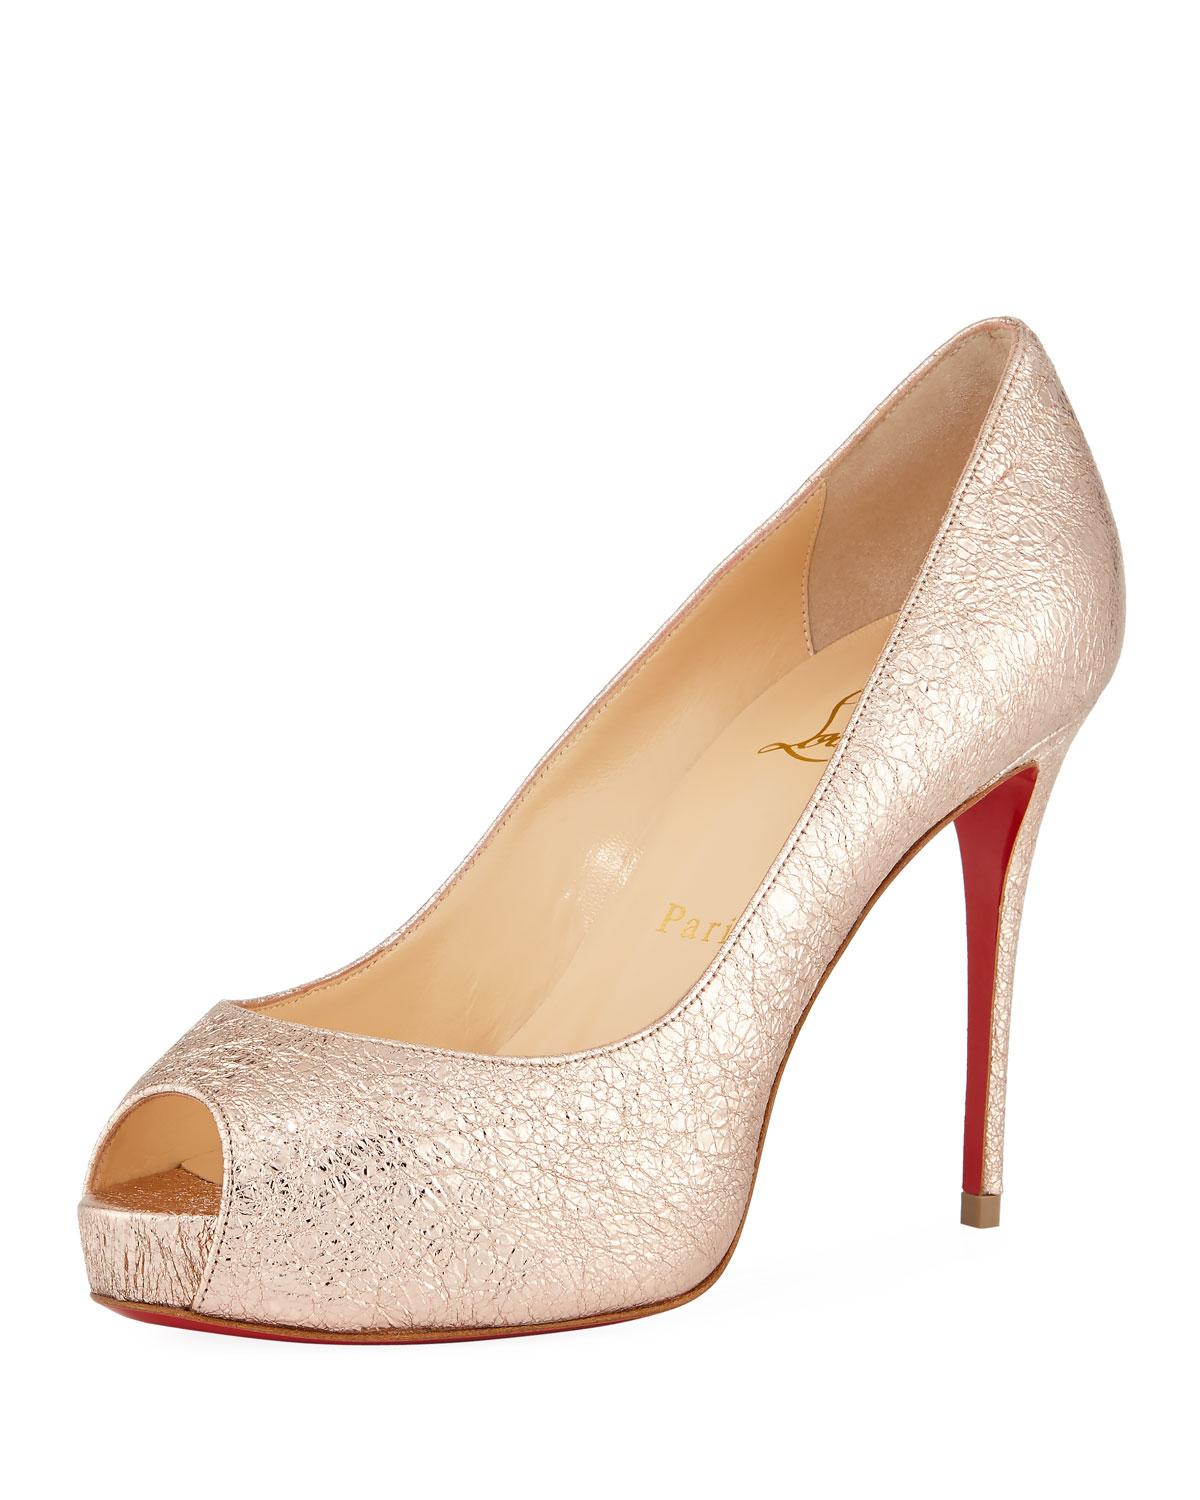 8e3ec4610ffb CHRISTIAN LOUBOUTIN. New Very Prive 100Mm Crackled Leather Red Sole Pump in  Rose Gold